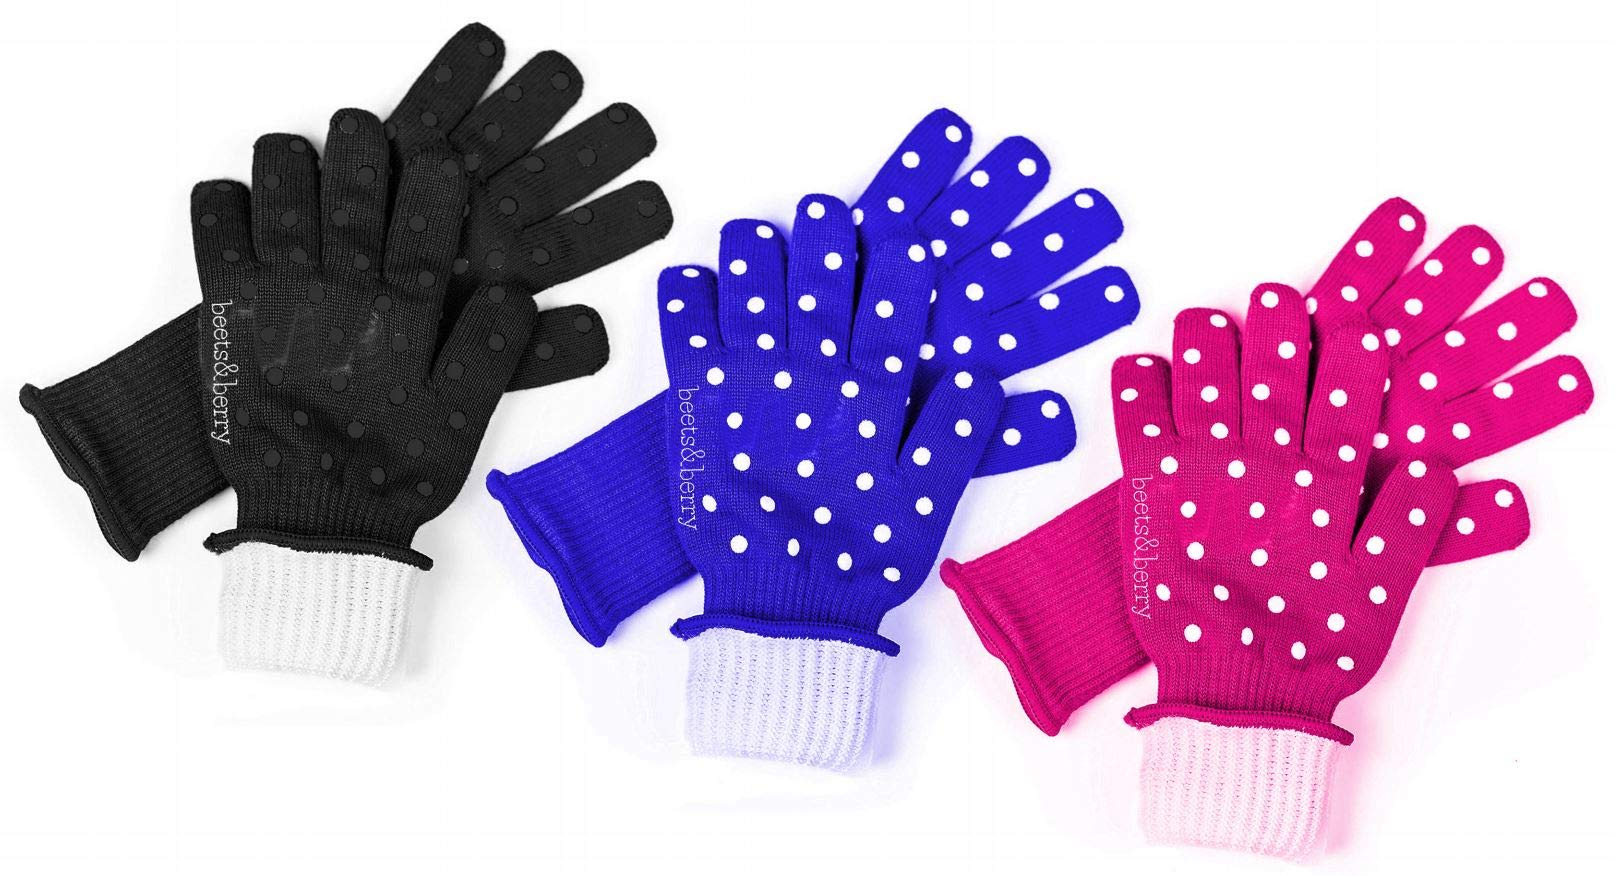 Beets&Berry Women's Oven Mitts | 932°F Heat Resistant Gloves with Extended Sleeves to Protect Forearms | Cut Resistant Oven Gloves with Silicone Non-Slip Grip Spots (All 3) by Beets & Berry